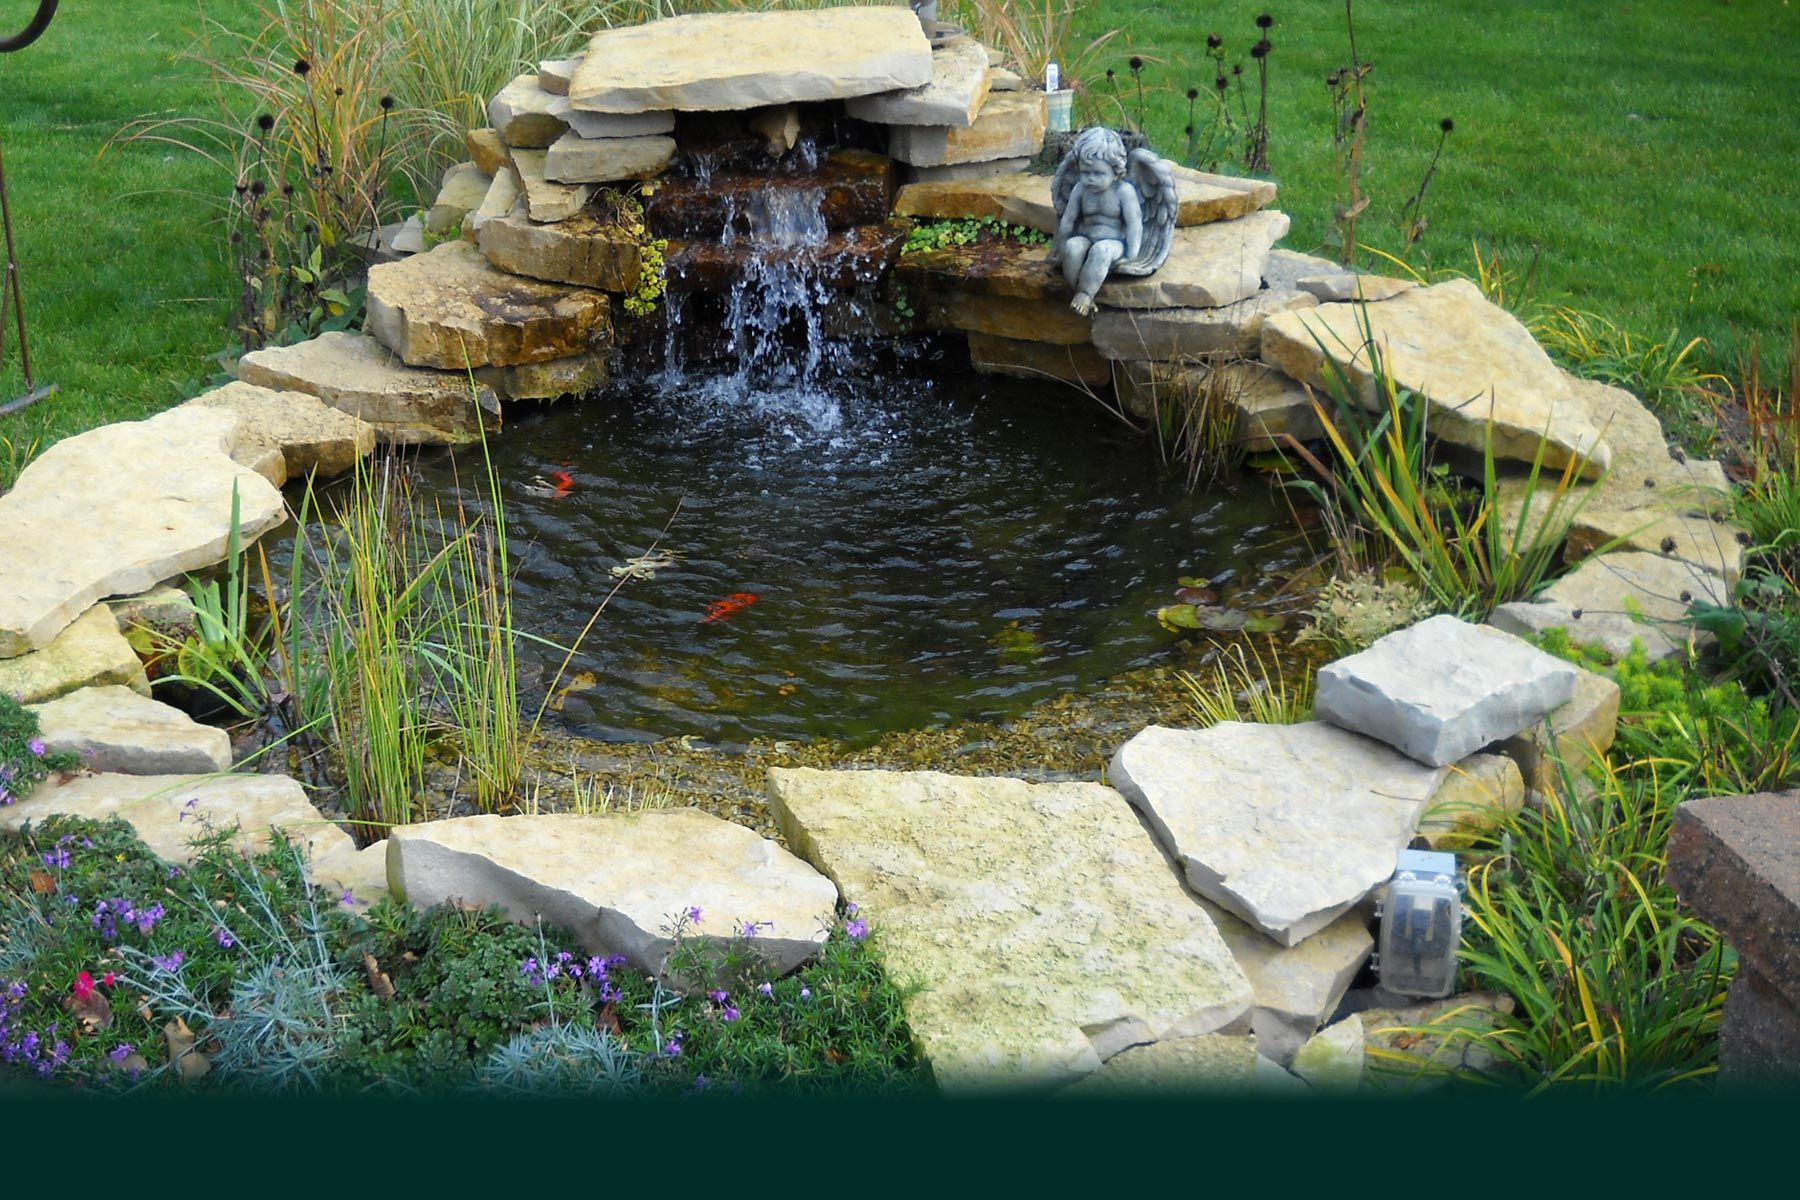 Pin by Connie Dill on water ponds / fountains / dry creek beds